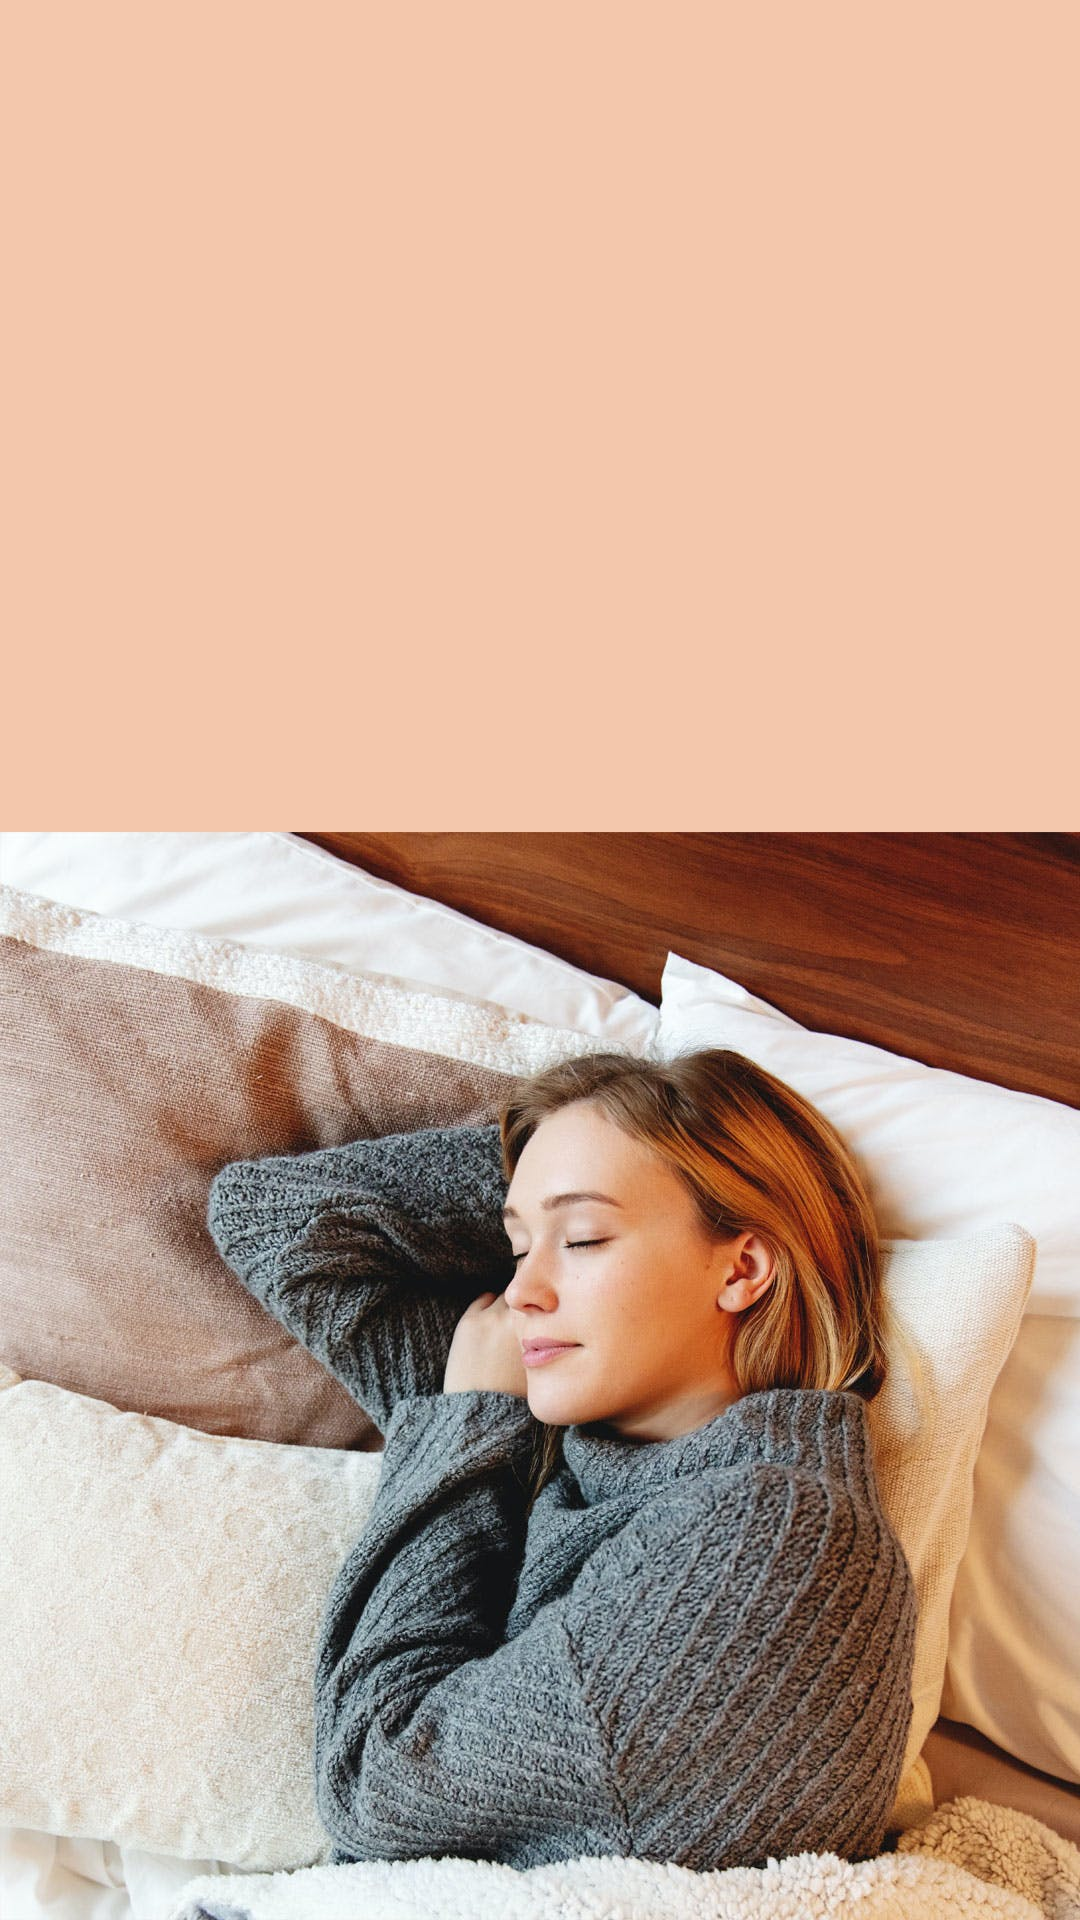 woman sleeps in a fall seasoned bed with beautiful blankets and pillows